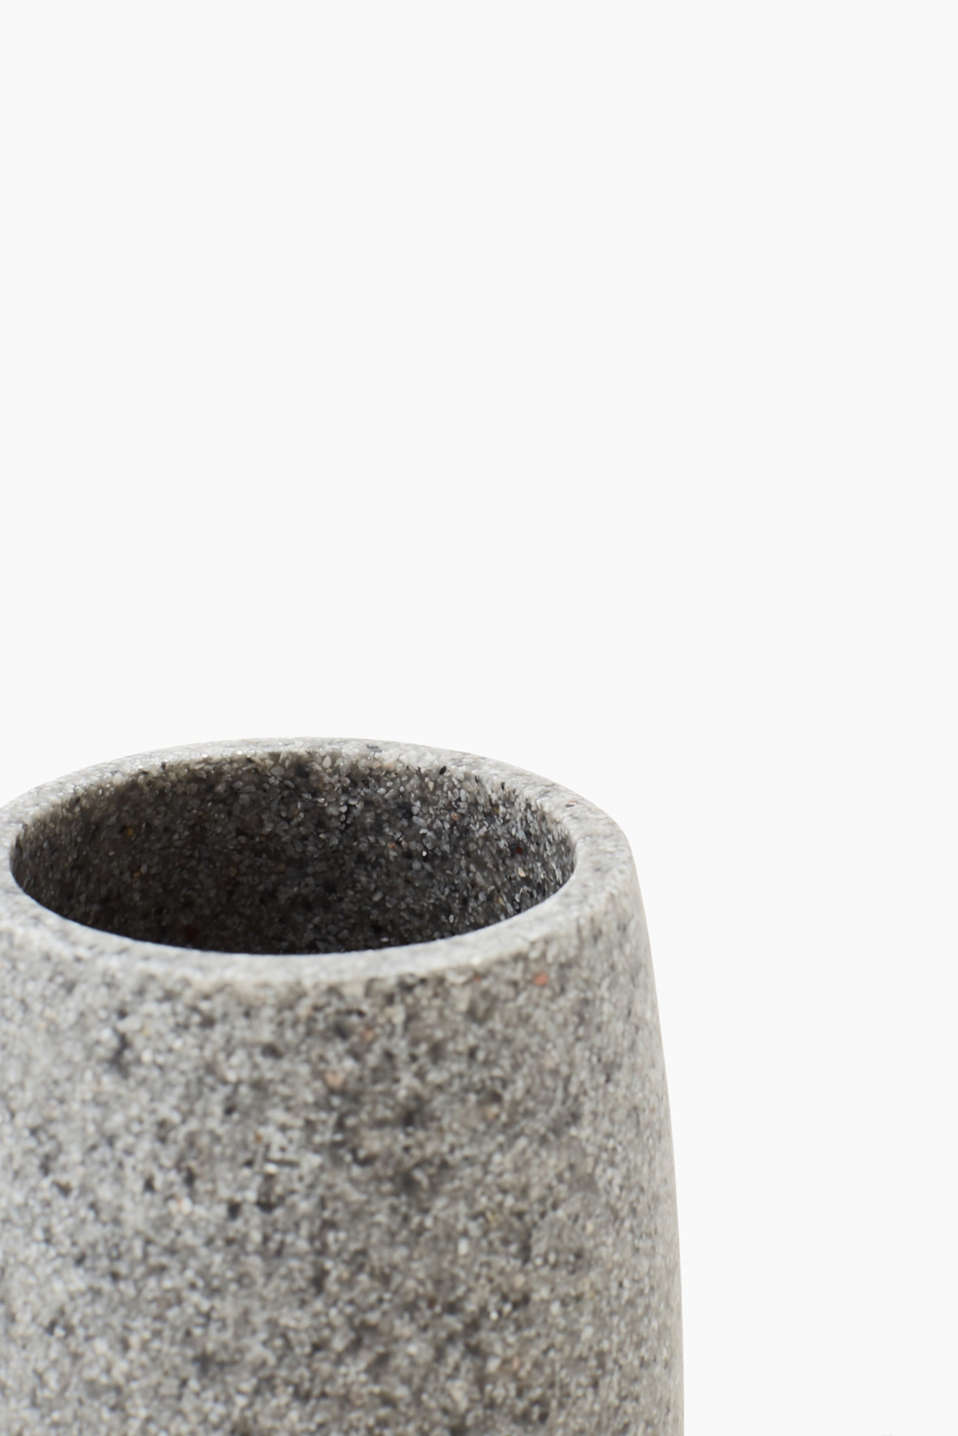 Simple toothbrush tumbler, ceramic look